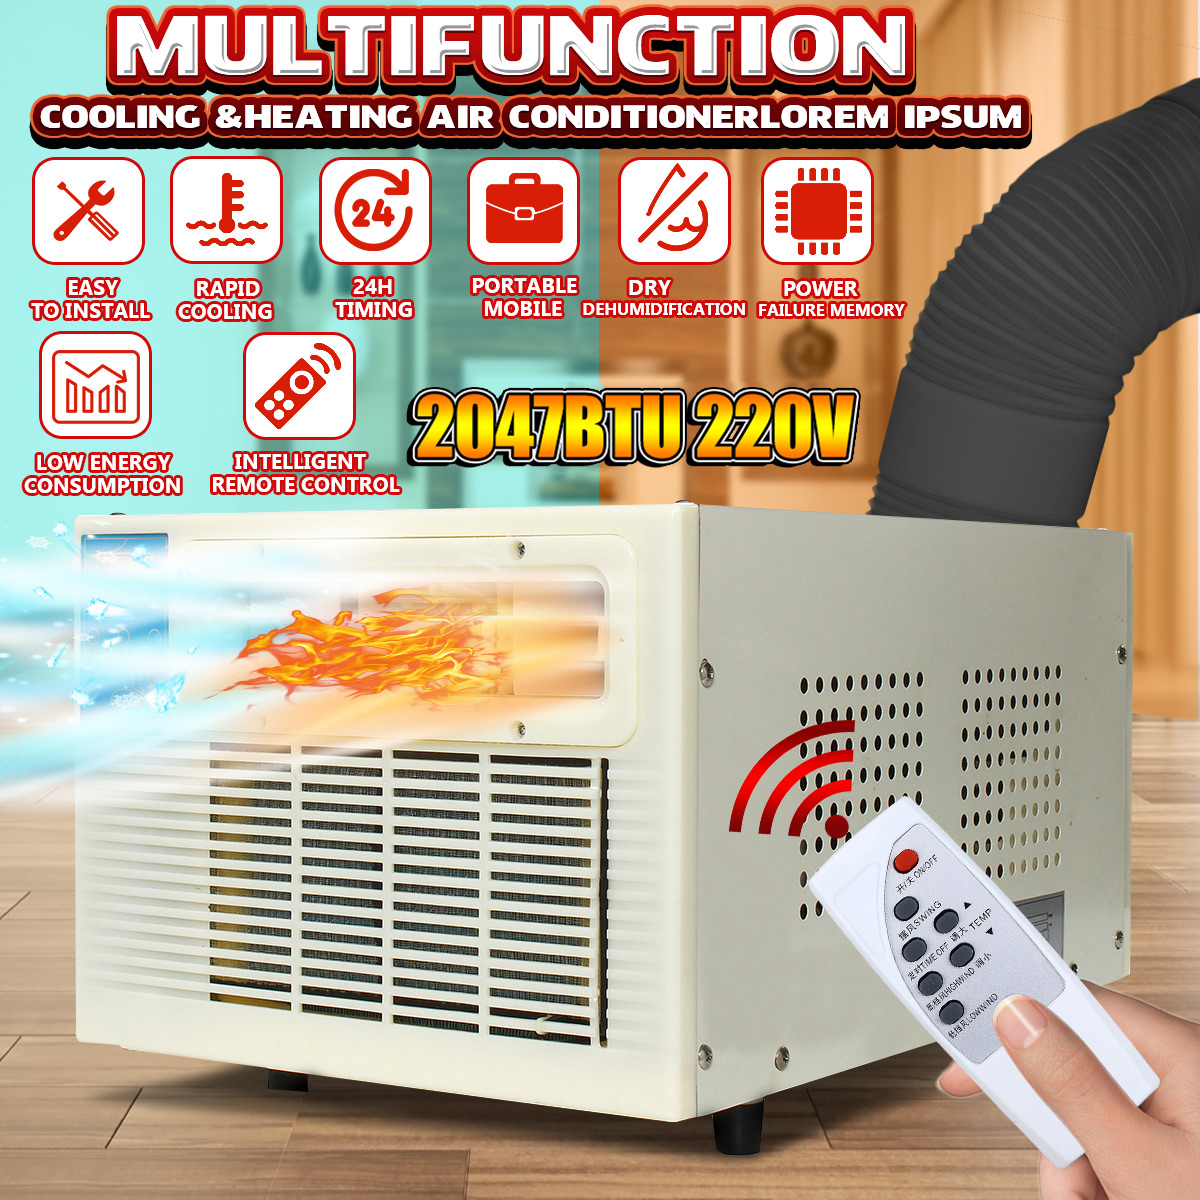 Portable Air Conditioner Window Wall Box Refrigerated Rmote Air Conditioner Heater Cooling Cooler Heating For Home Caravan